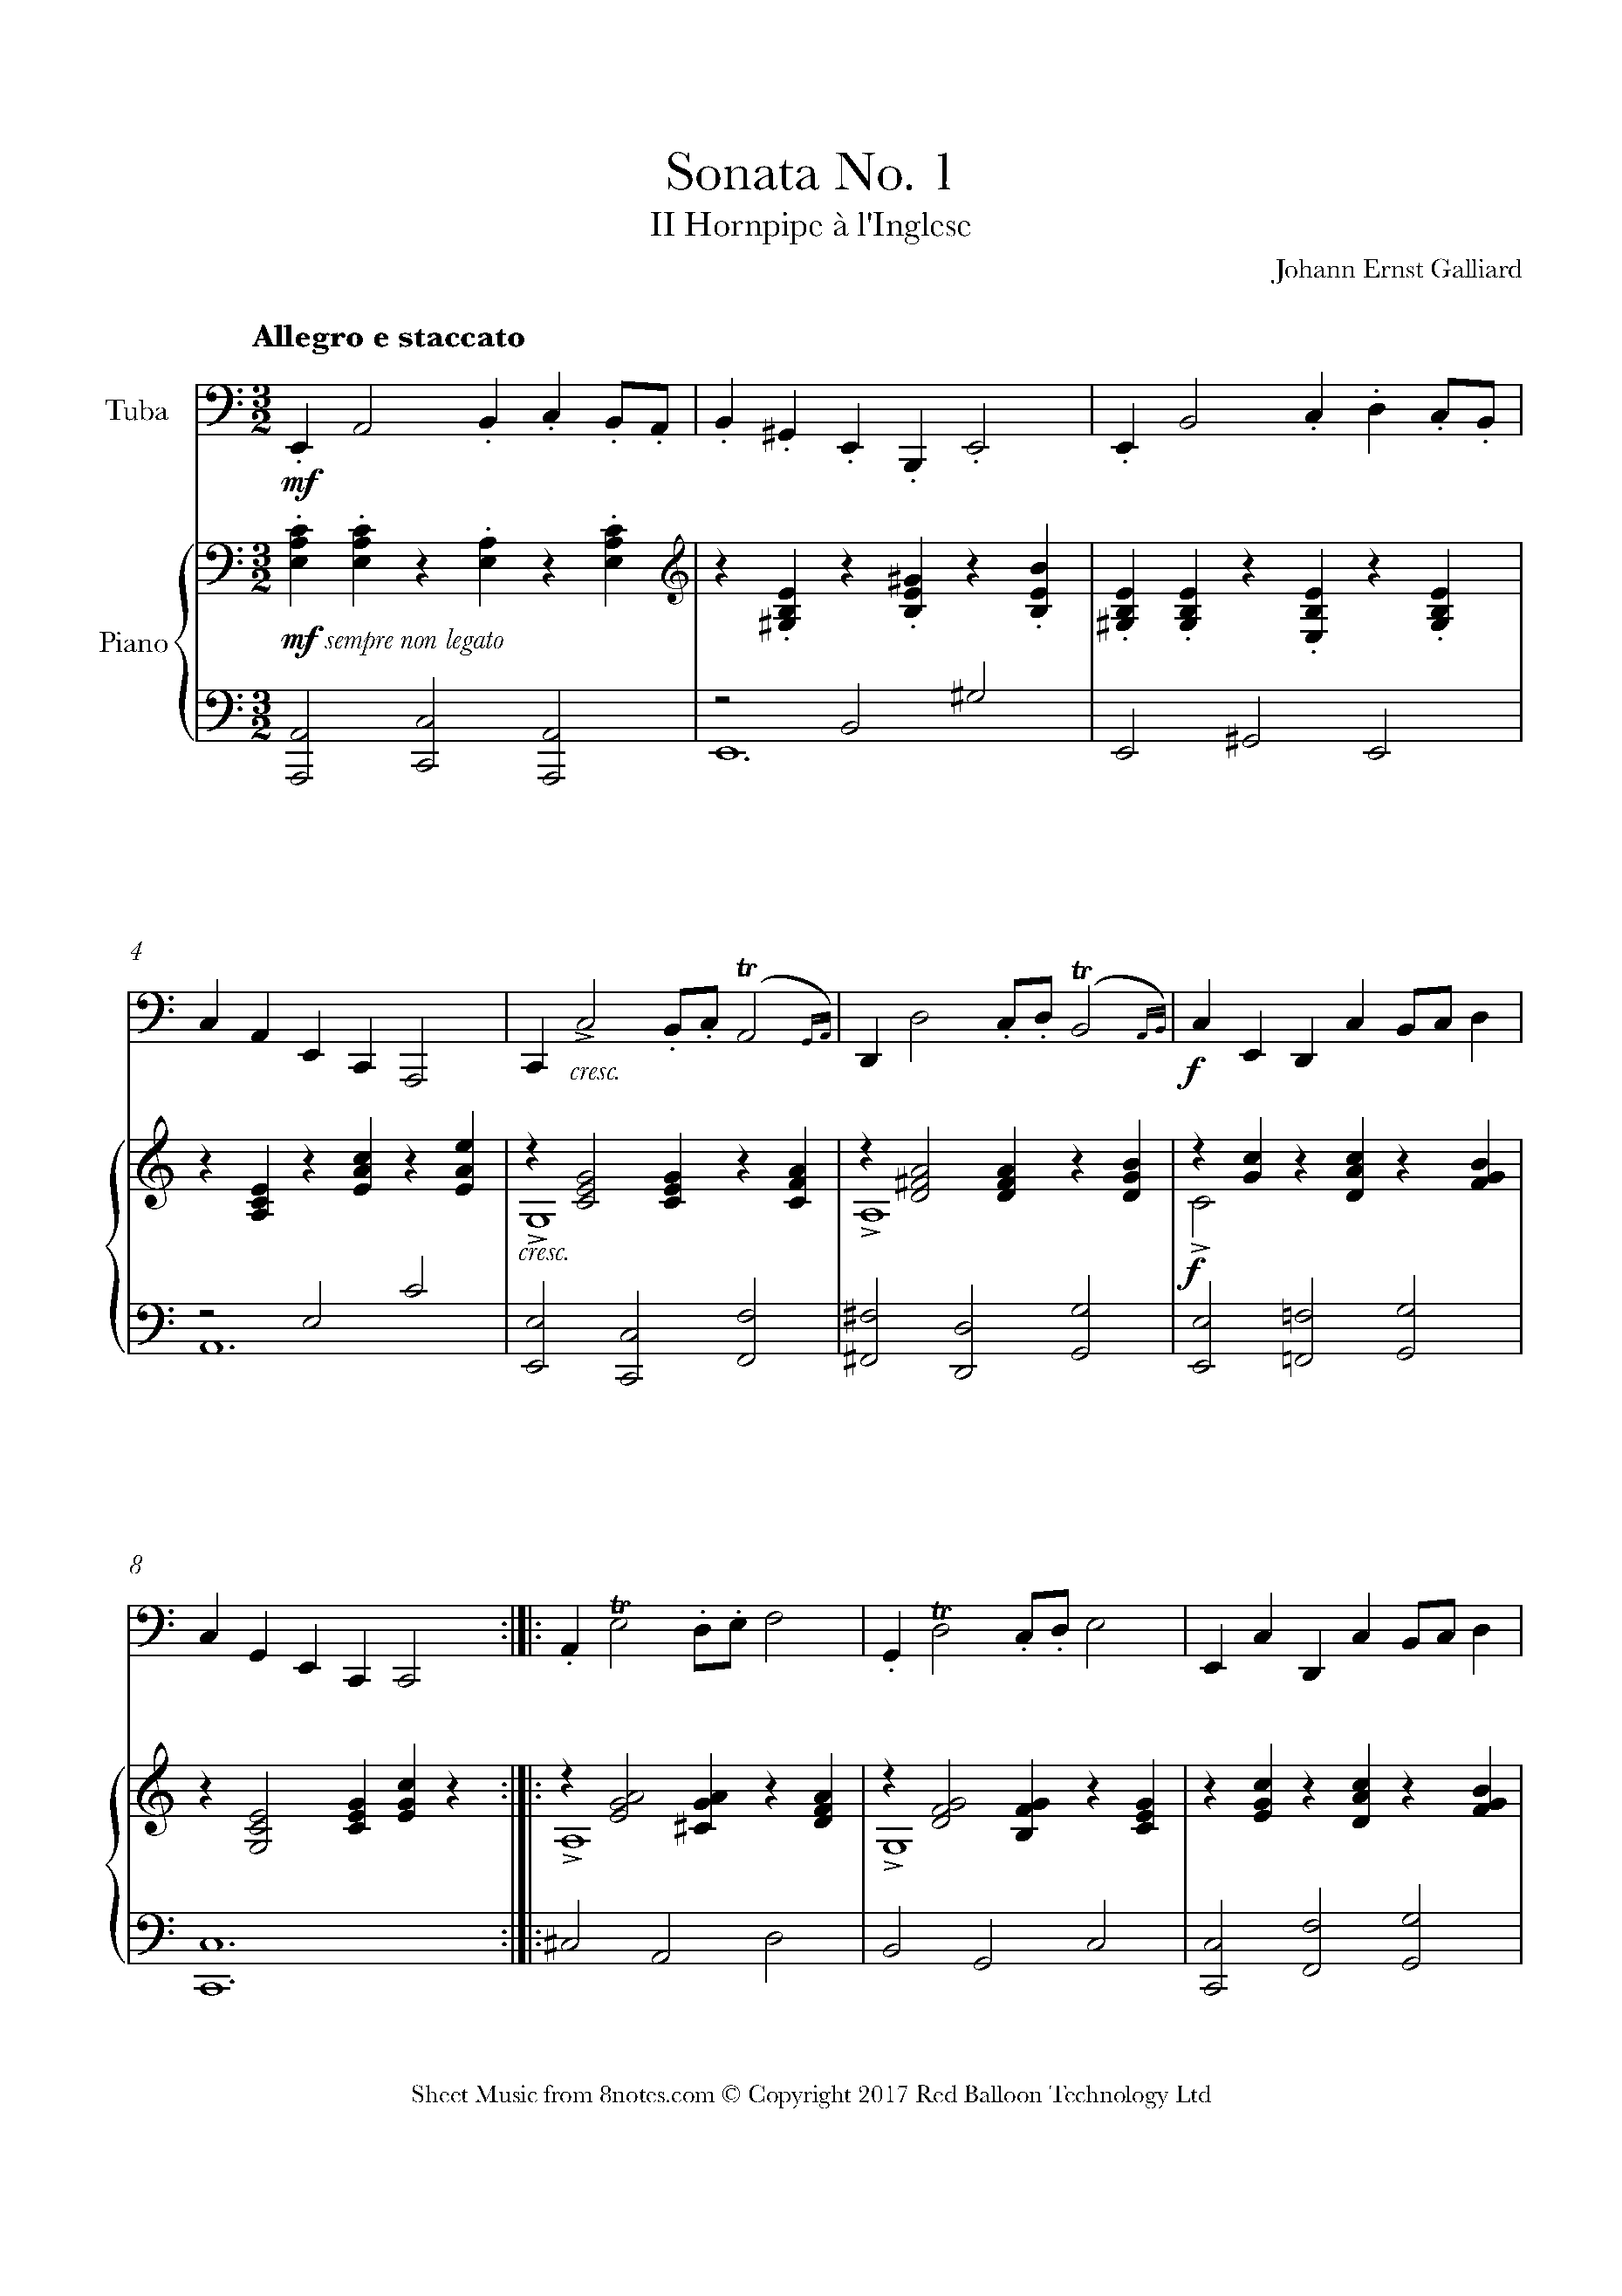 Free Tuba Sheet Music, Lessons & Resources - 8notes.com